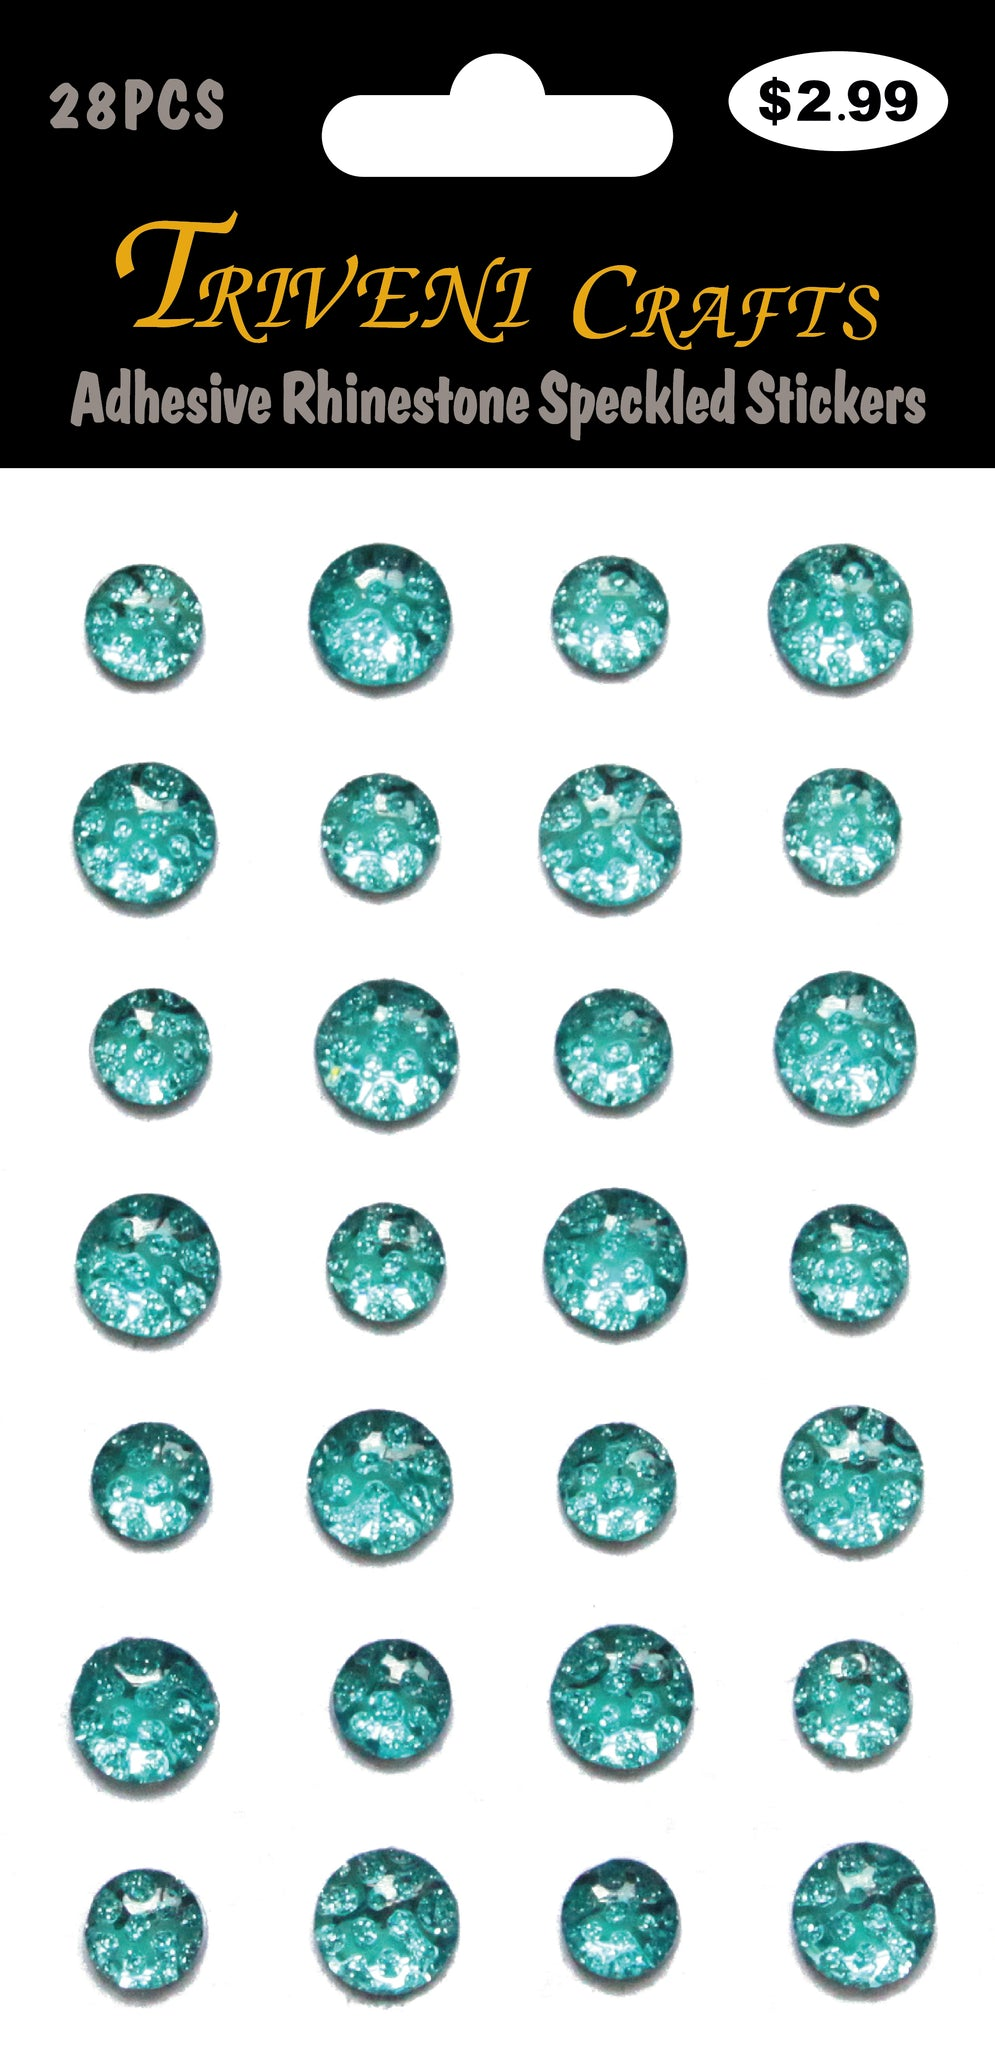 Adhesive Rhinestone Speckled Stickers - Teal